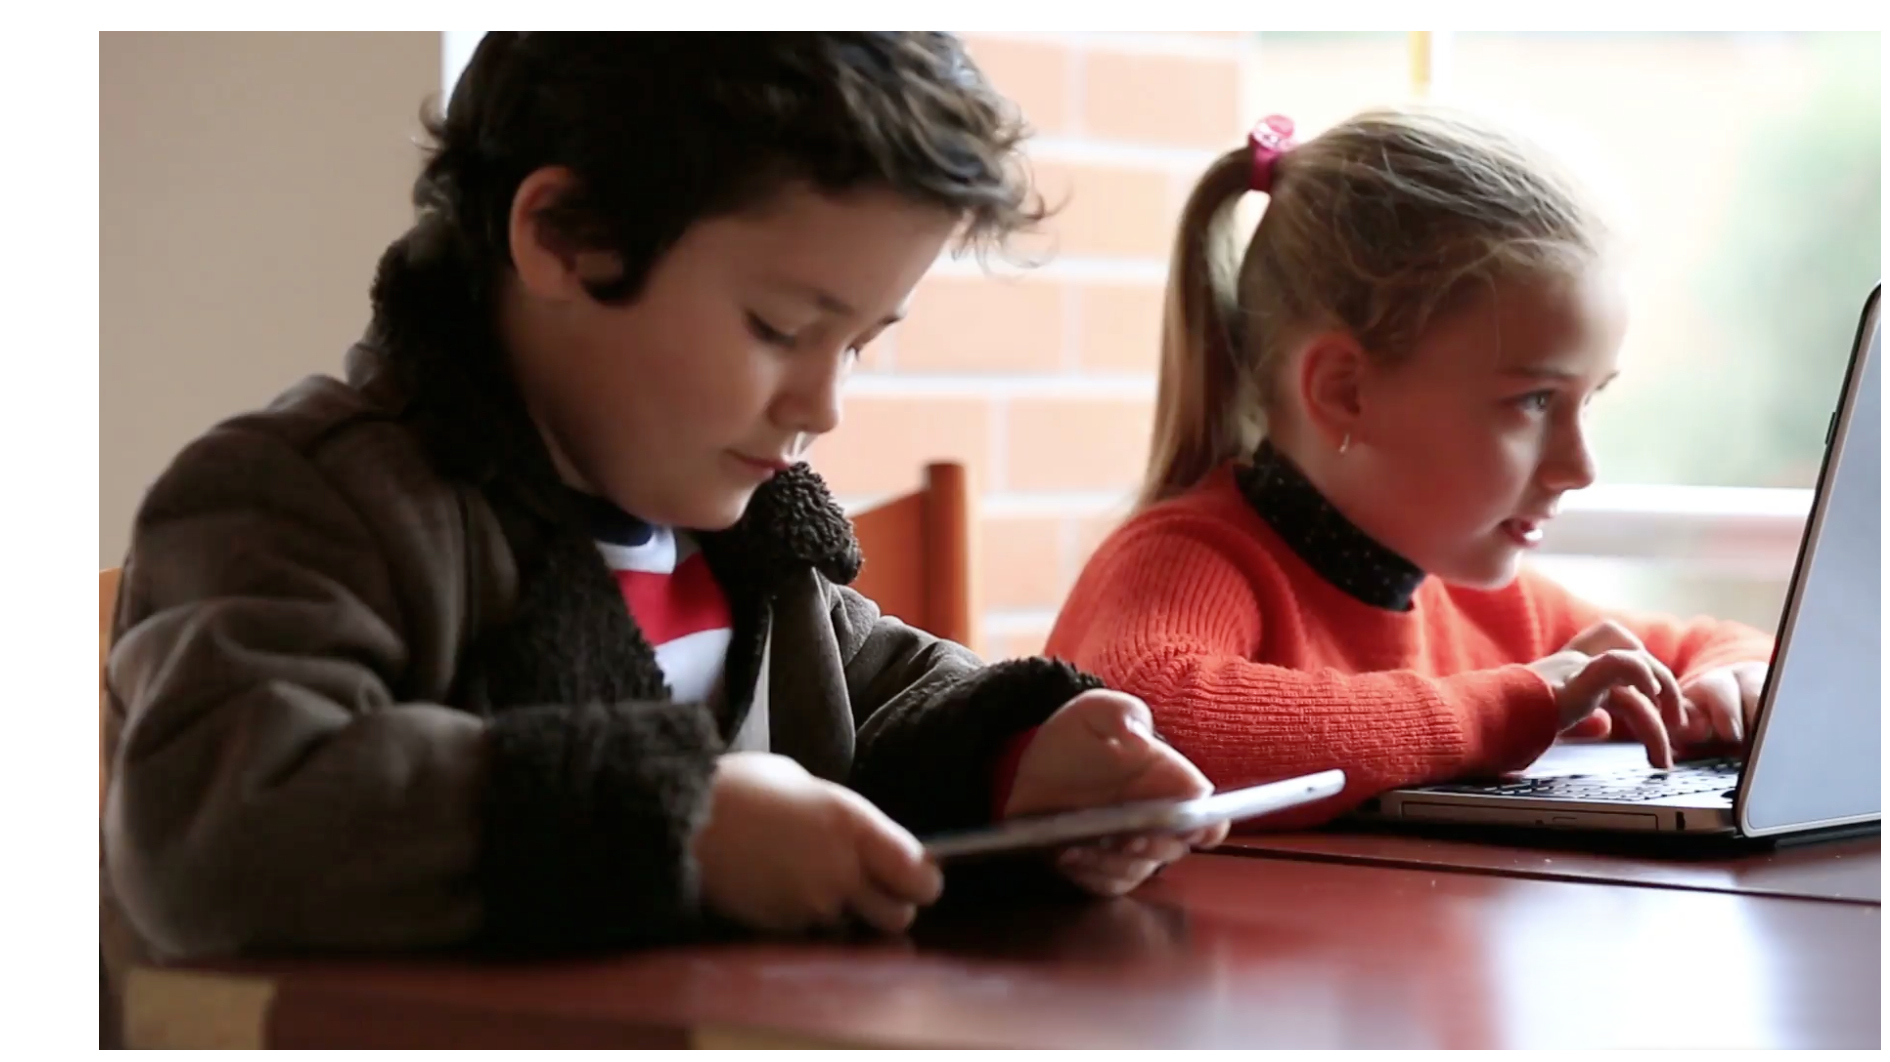 smart_kids_on_devices